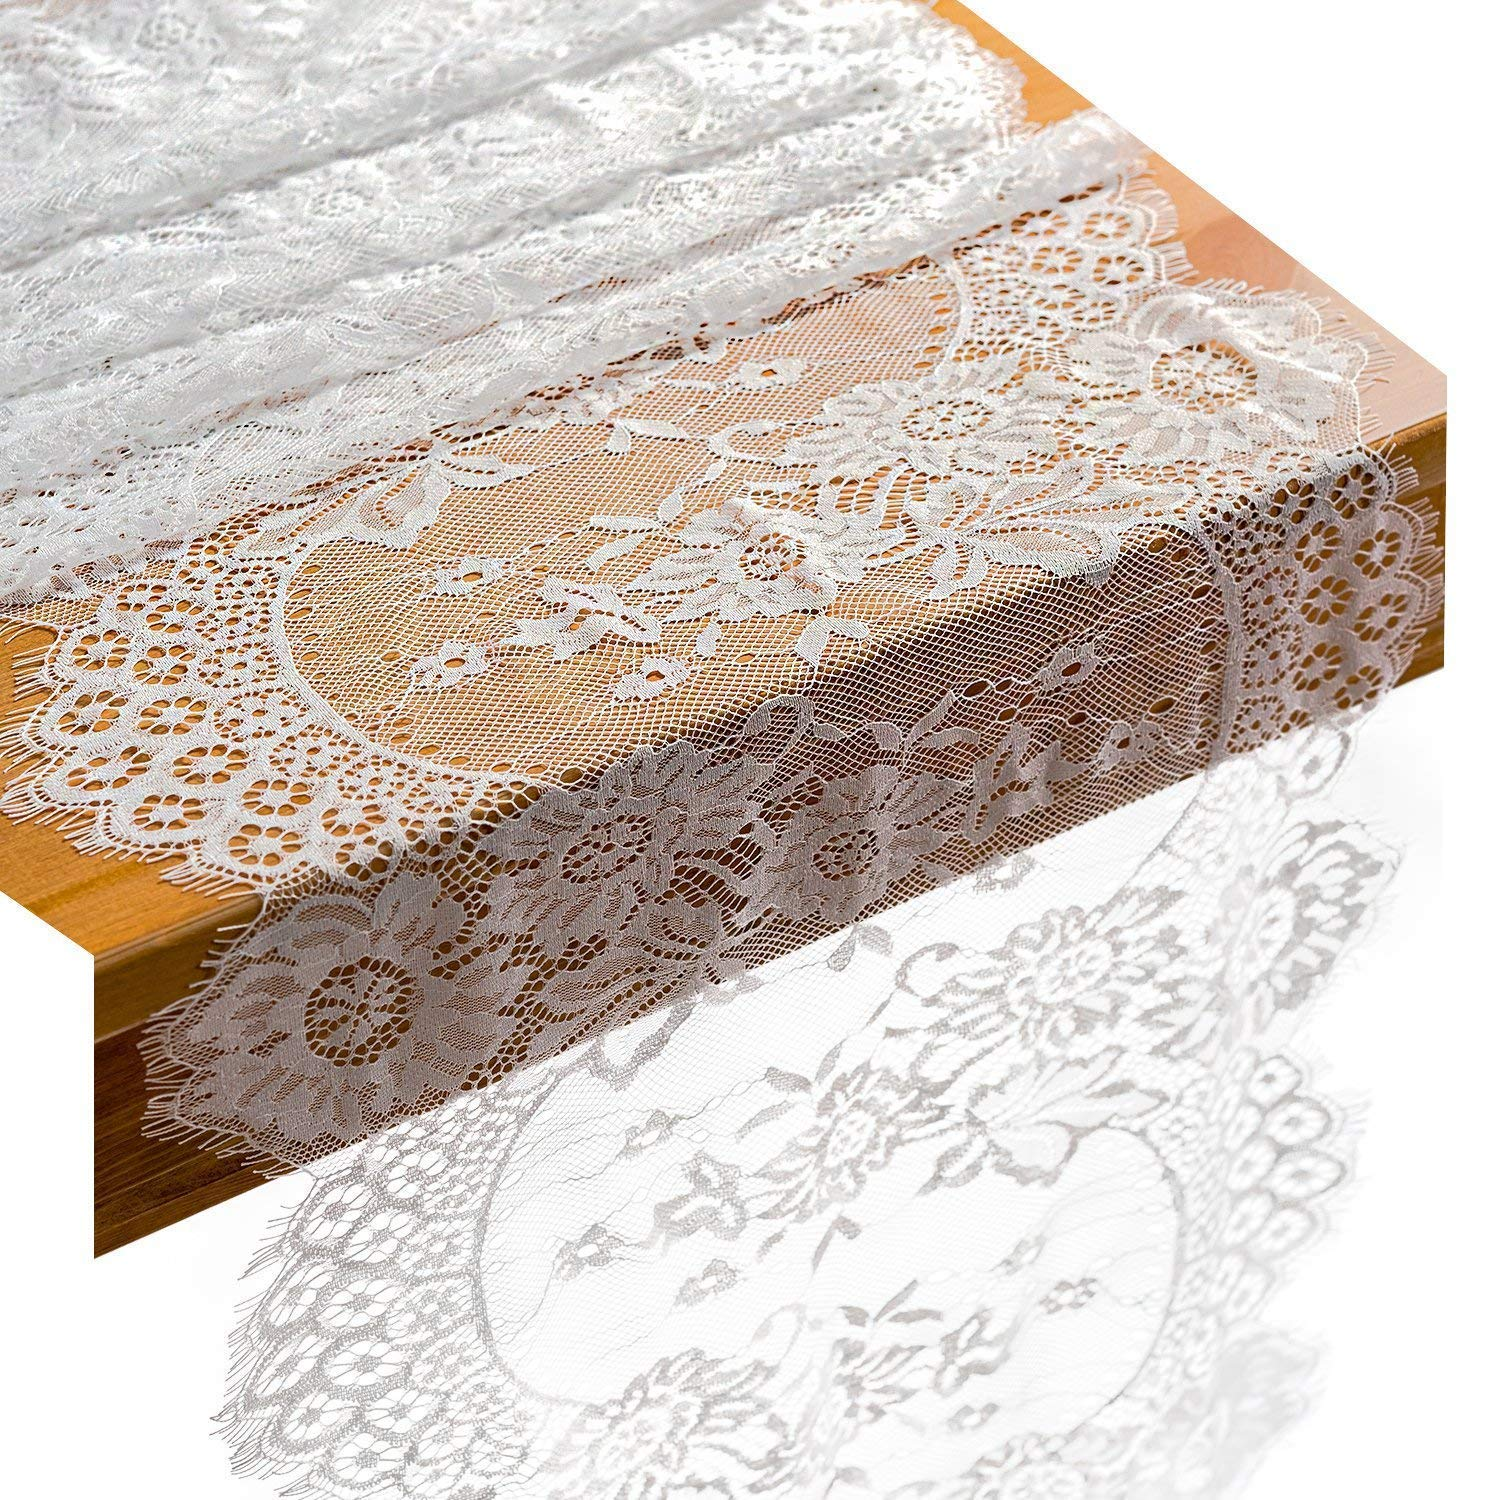 White Lace Table Runner/Overlay with Rose Vintage Embroidered, Rustic Boho Wedding Reception Table Decor, Fall Thanksgiving Christmas Baby & Bridal Shower Party Decoration (1, white-14120inch)